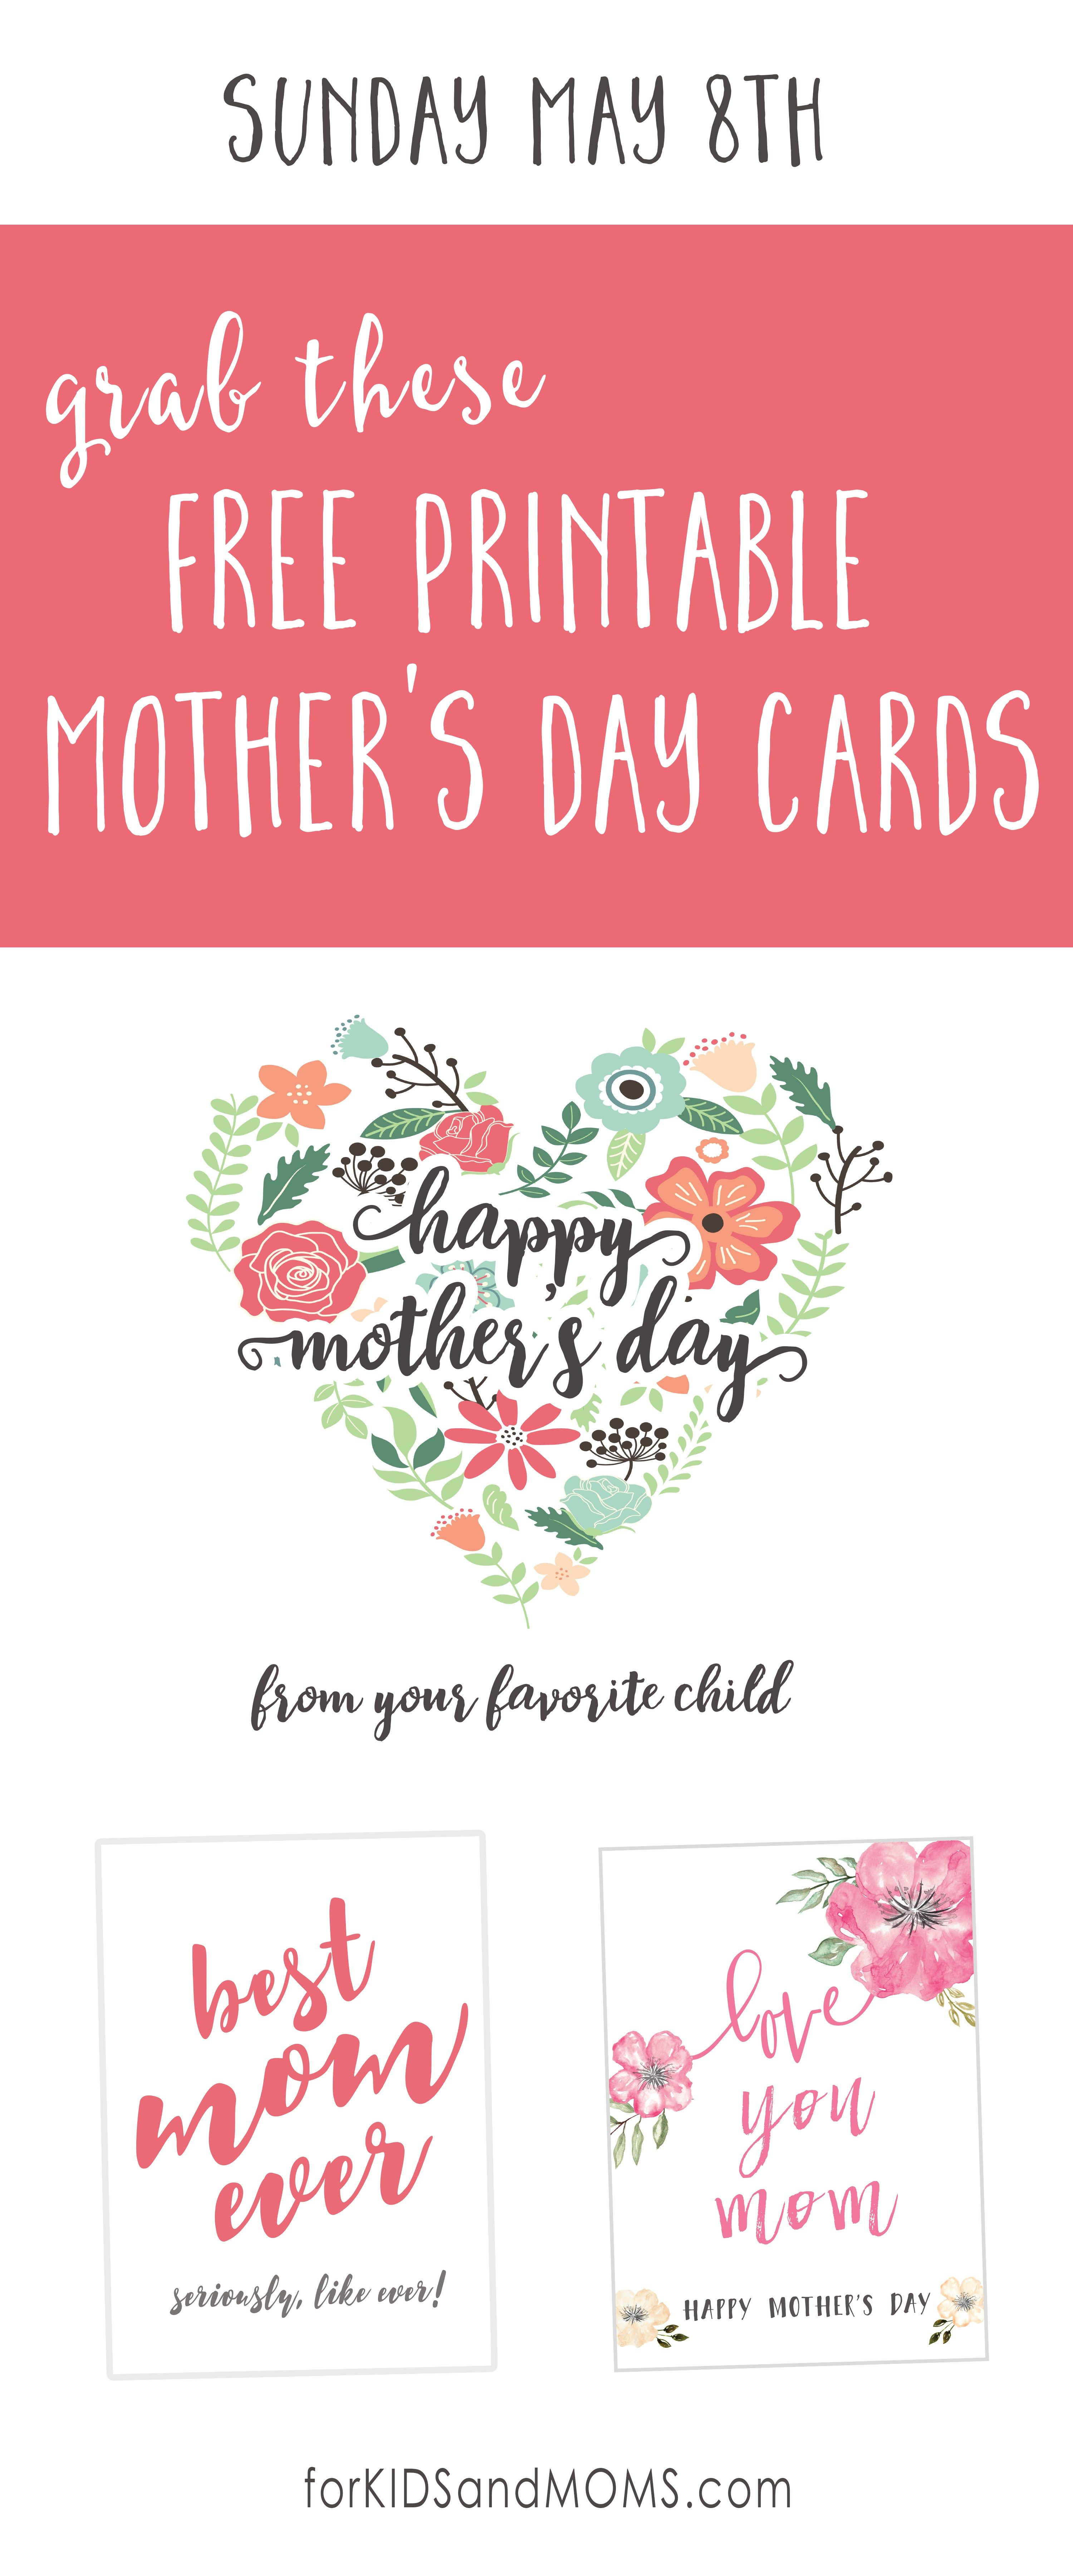 That Special Day For Mom Is Just A Few Days Away So We Thought That It Would Be Fun To Share A Mothers Day Cards Printable Mothers Day Cards Mother Day